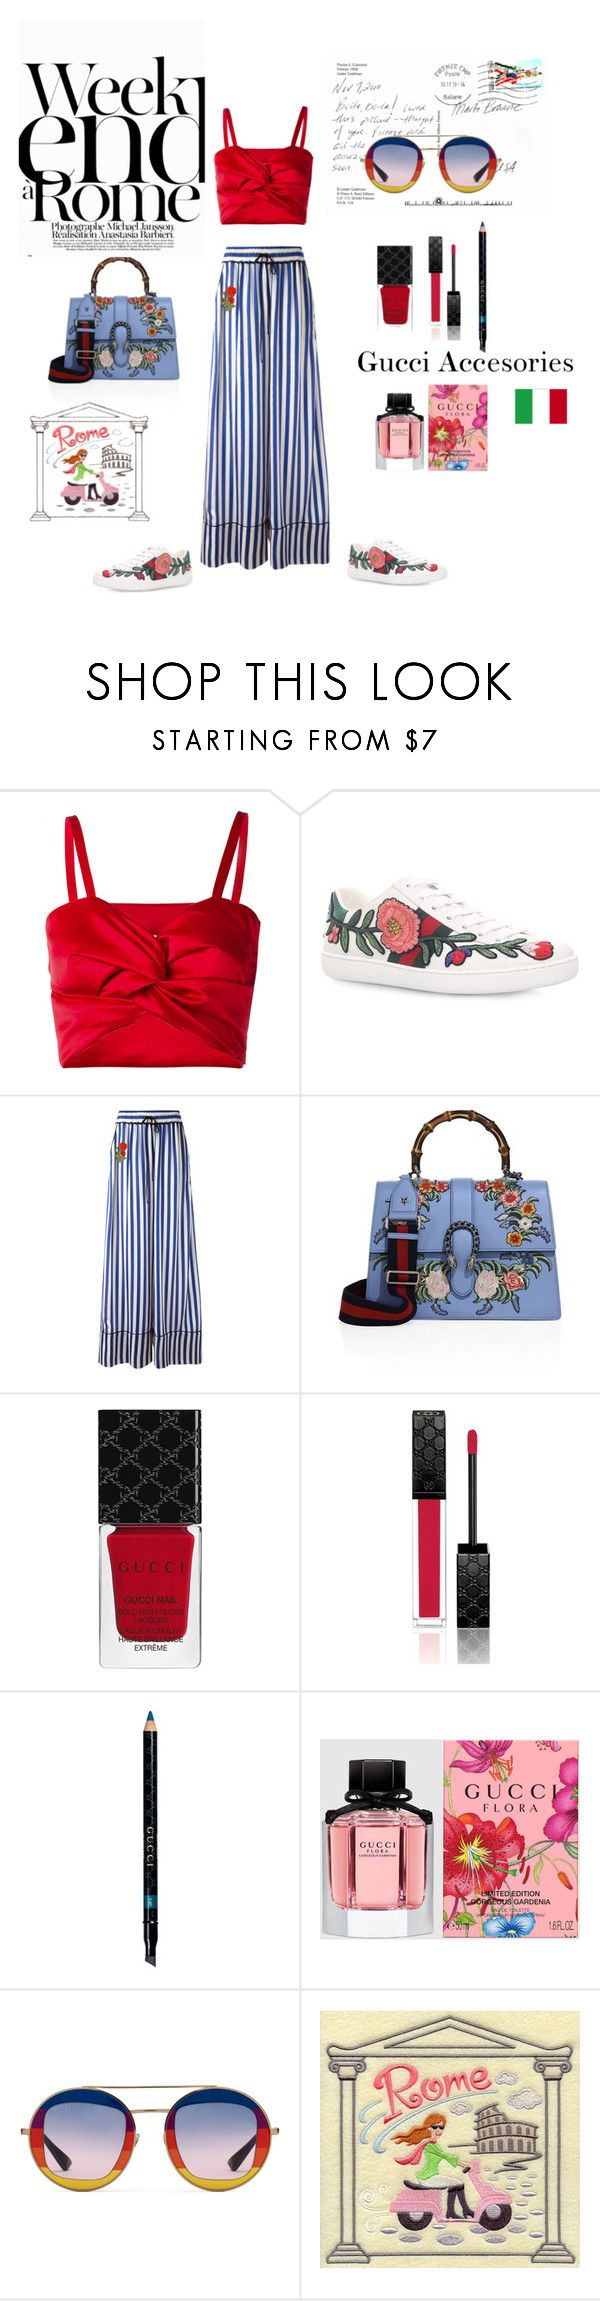 """Weekend à Rome"" by geonell ❤ liked on Polyvore featuring Sadie Williams, Gucci, Off-White, Lara, Summer, summerstyle, gucci, rome and summer2017"